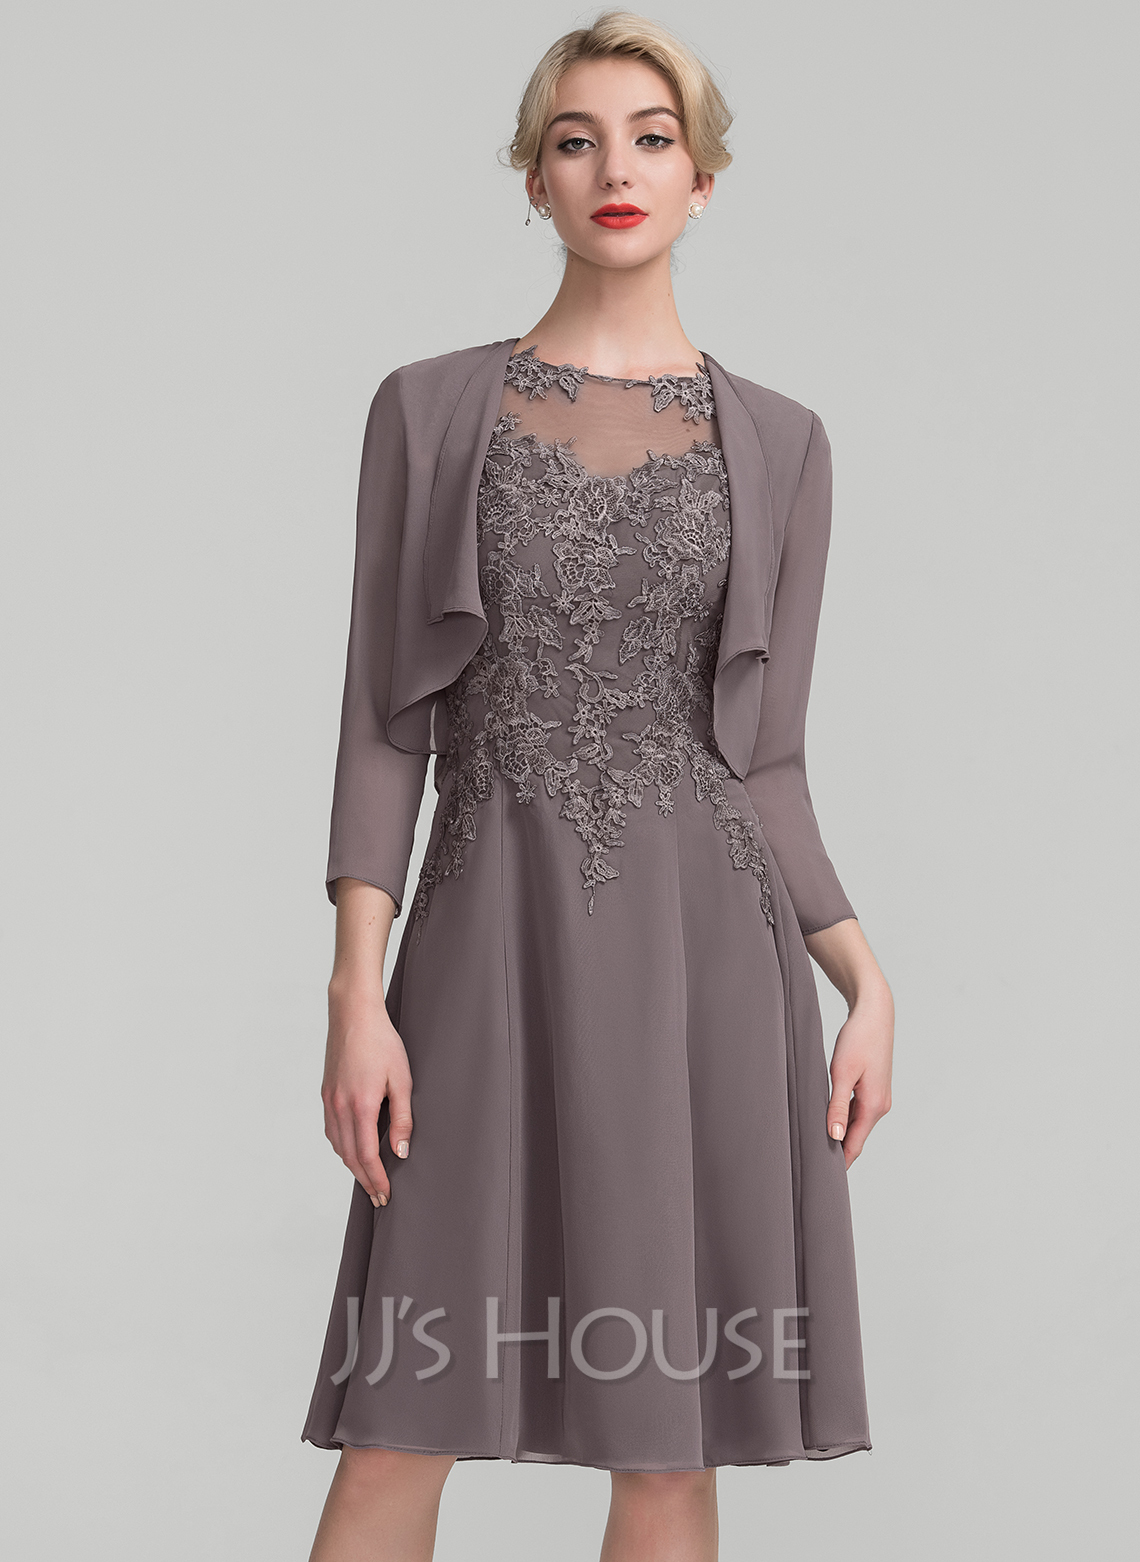 Mother Of The Bride Mother Of The Groom Dresses 2019 Jjs House